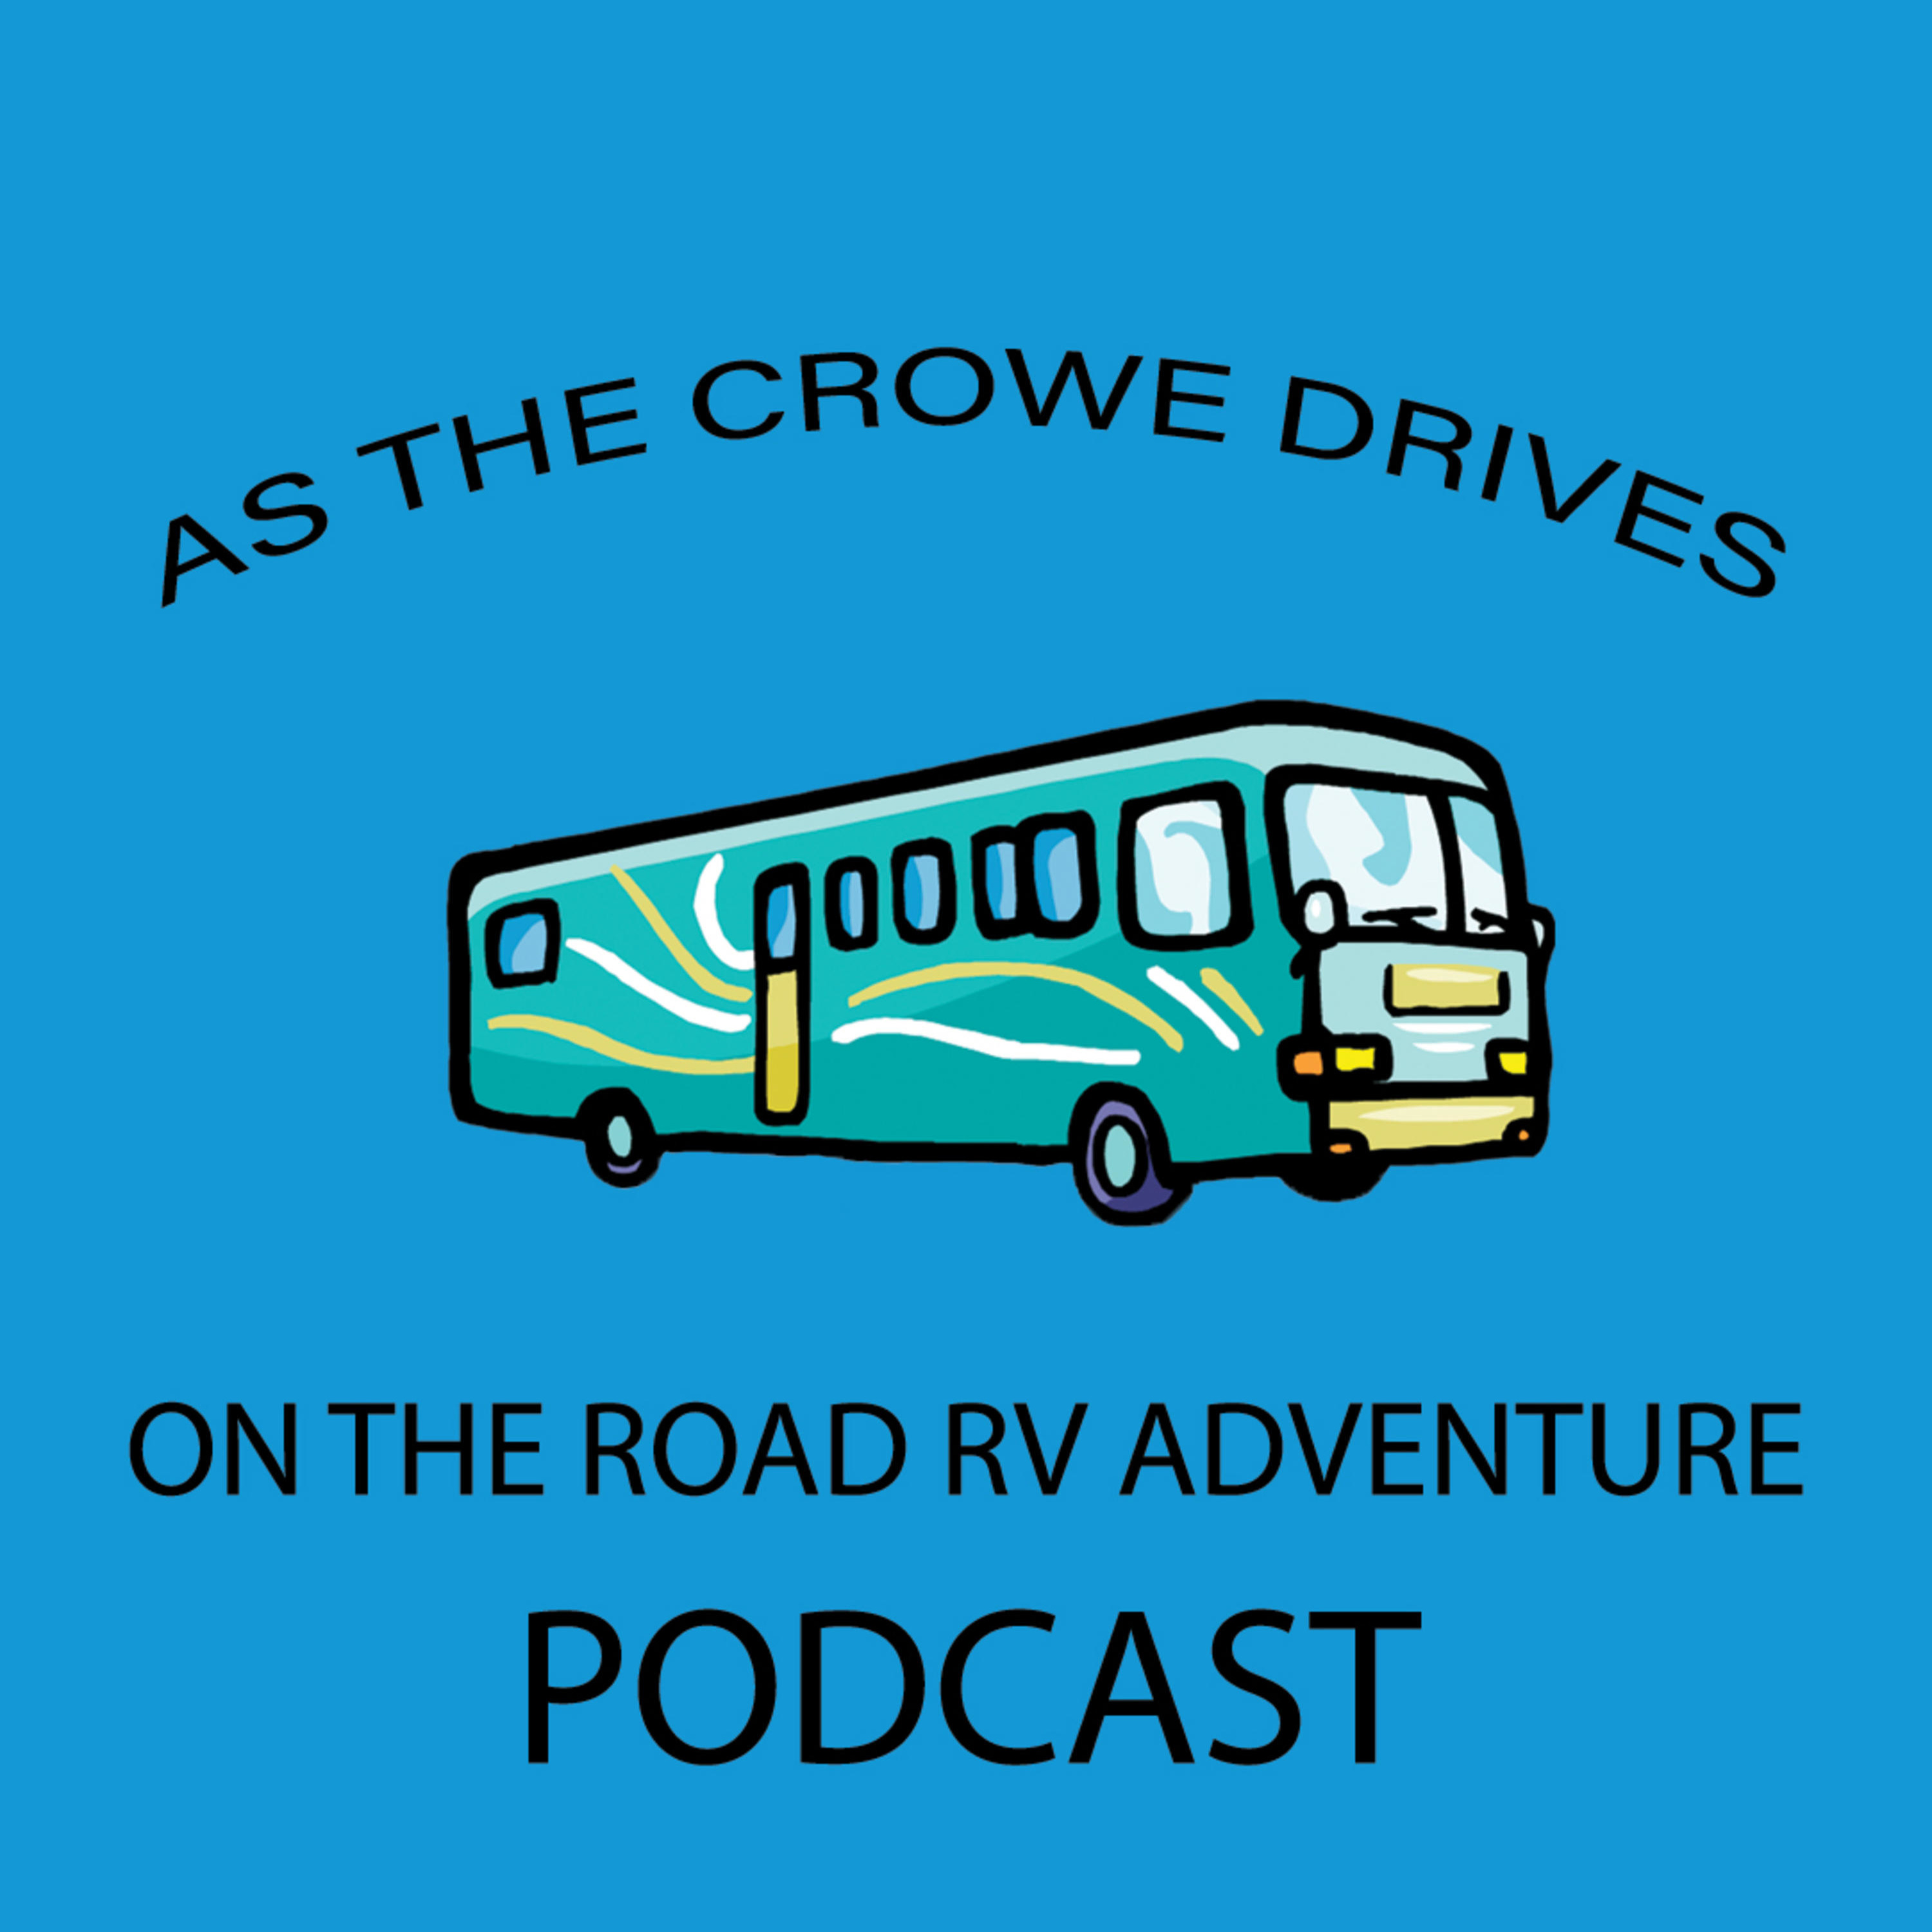 On The Road RV Lifestyle | Listen via Stitcher for Podcasts